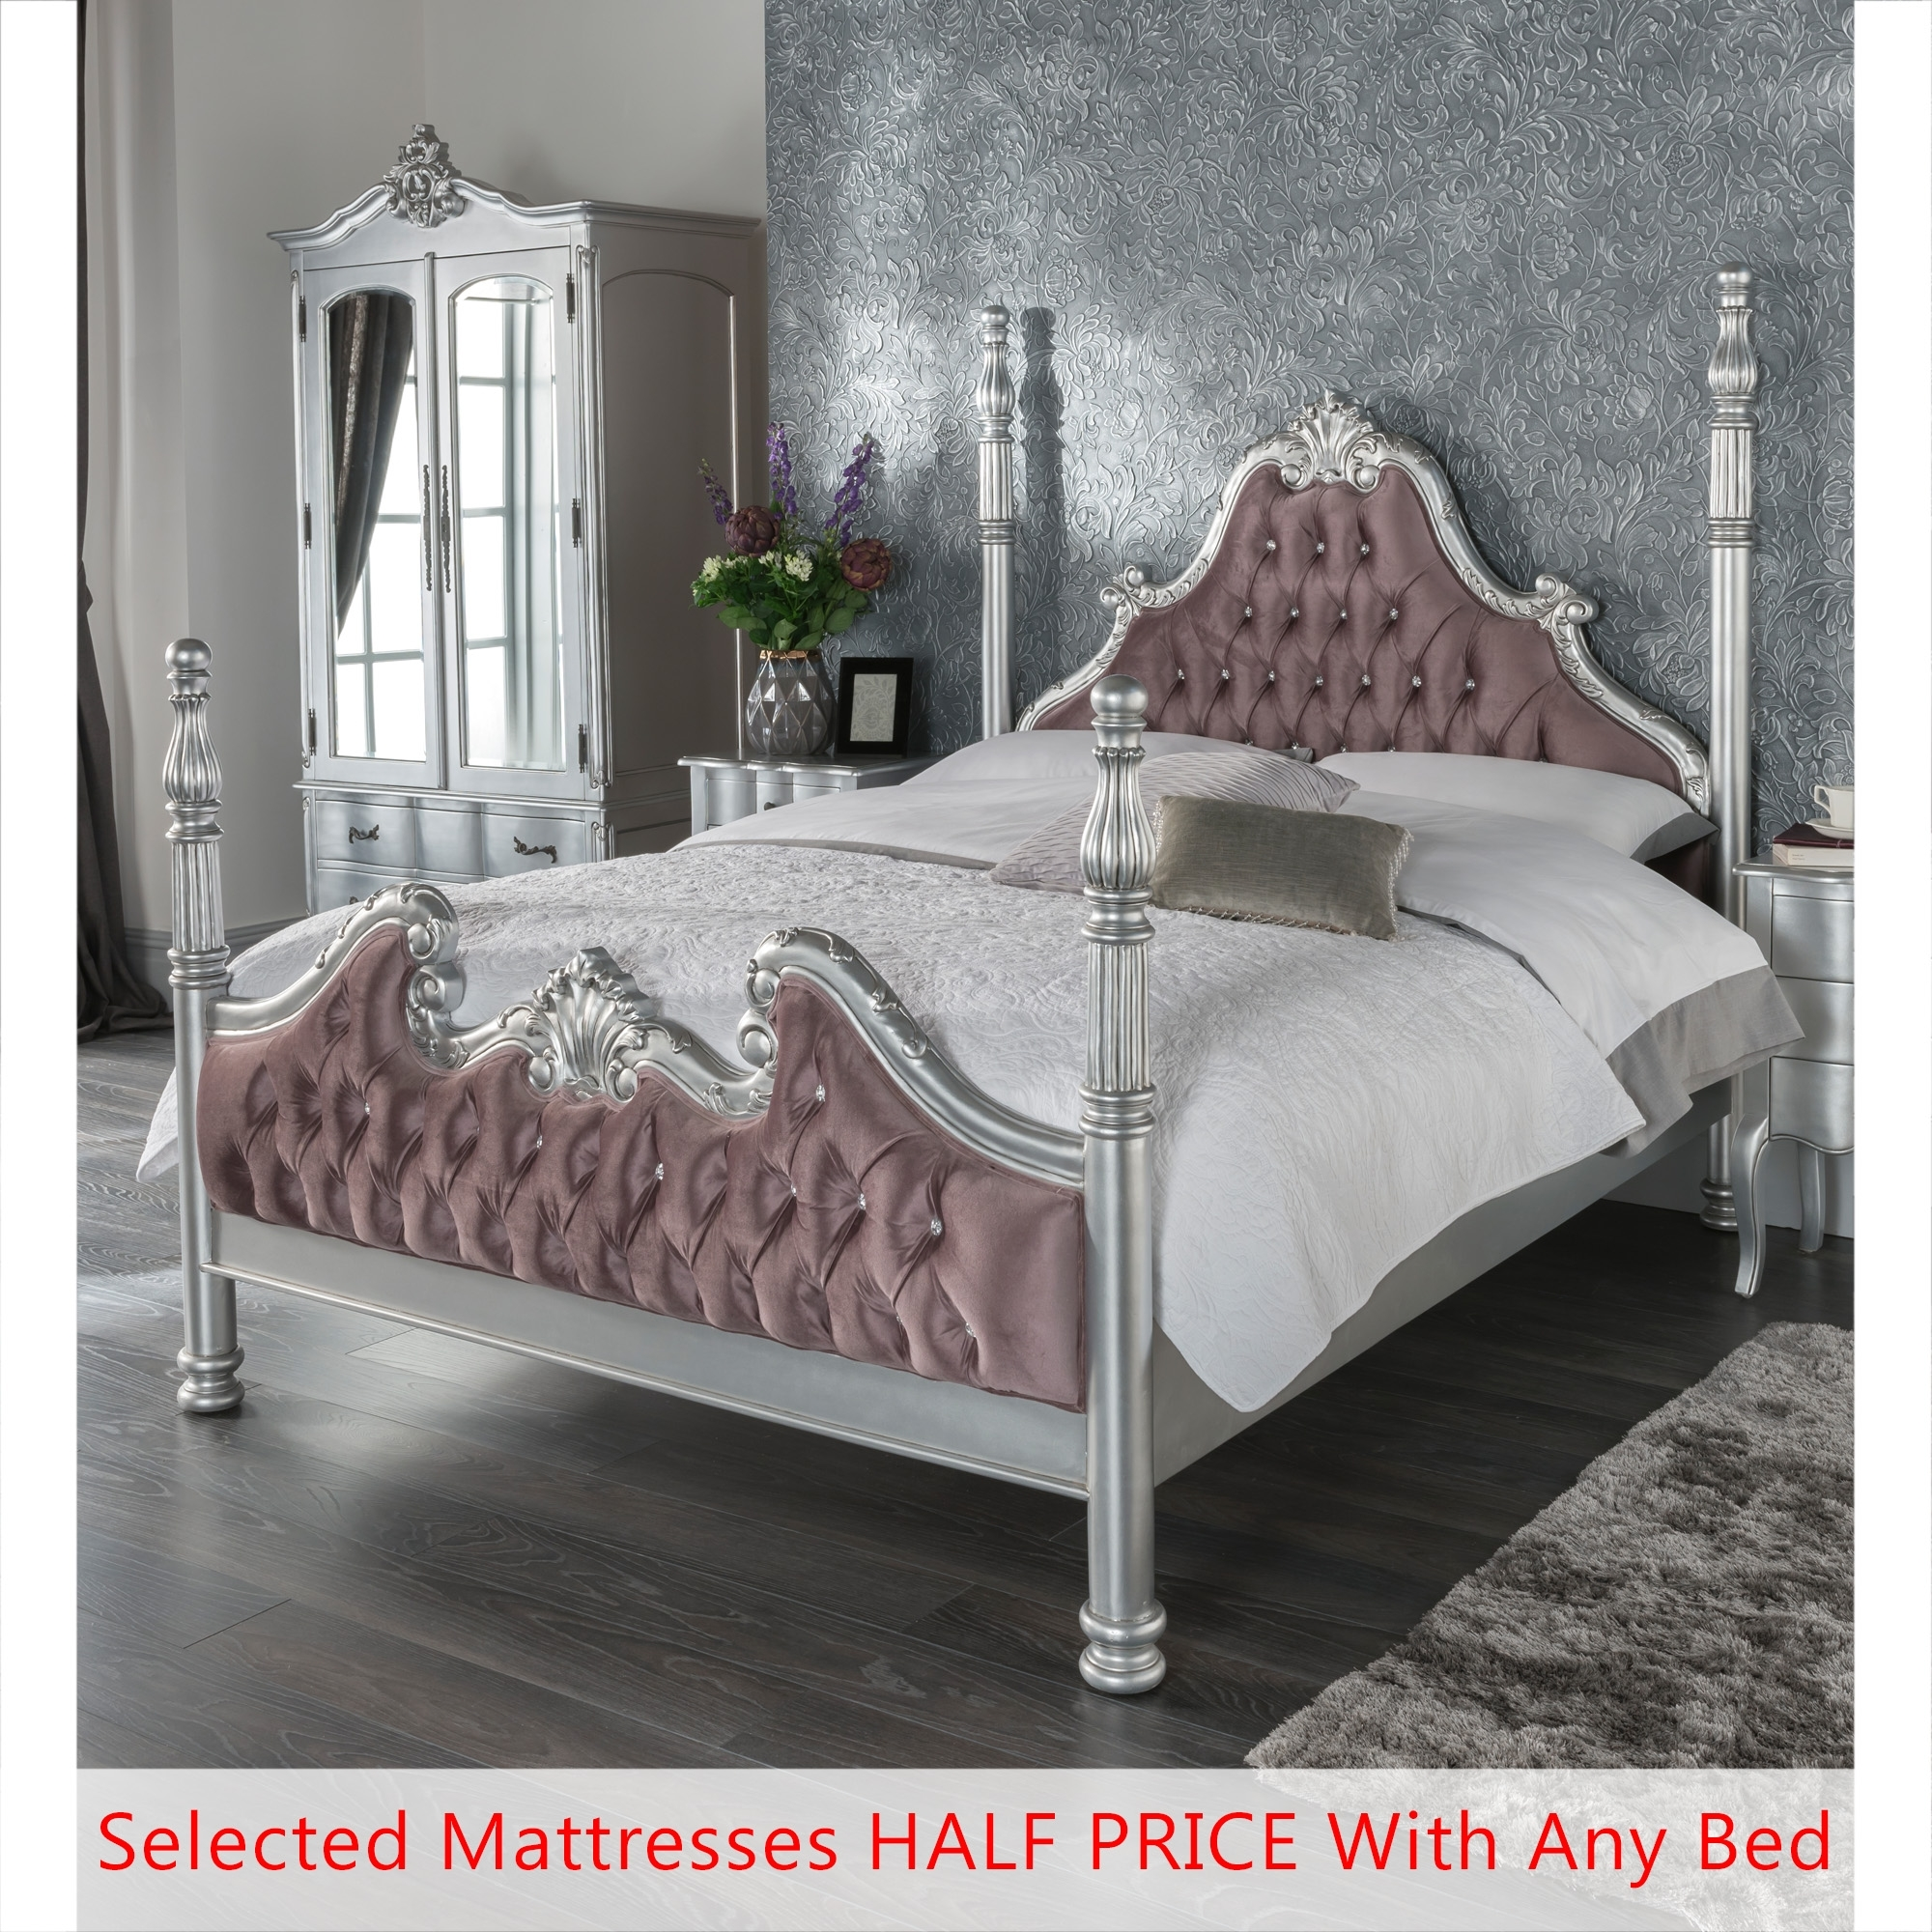 Picture of: Kingsize Estelle Silver Four Poster Antique French Style Bed Half Price Mattress Bundle French Furniture From Homesdirect 365 Uk